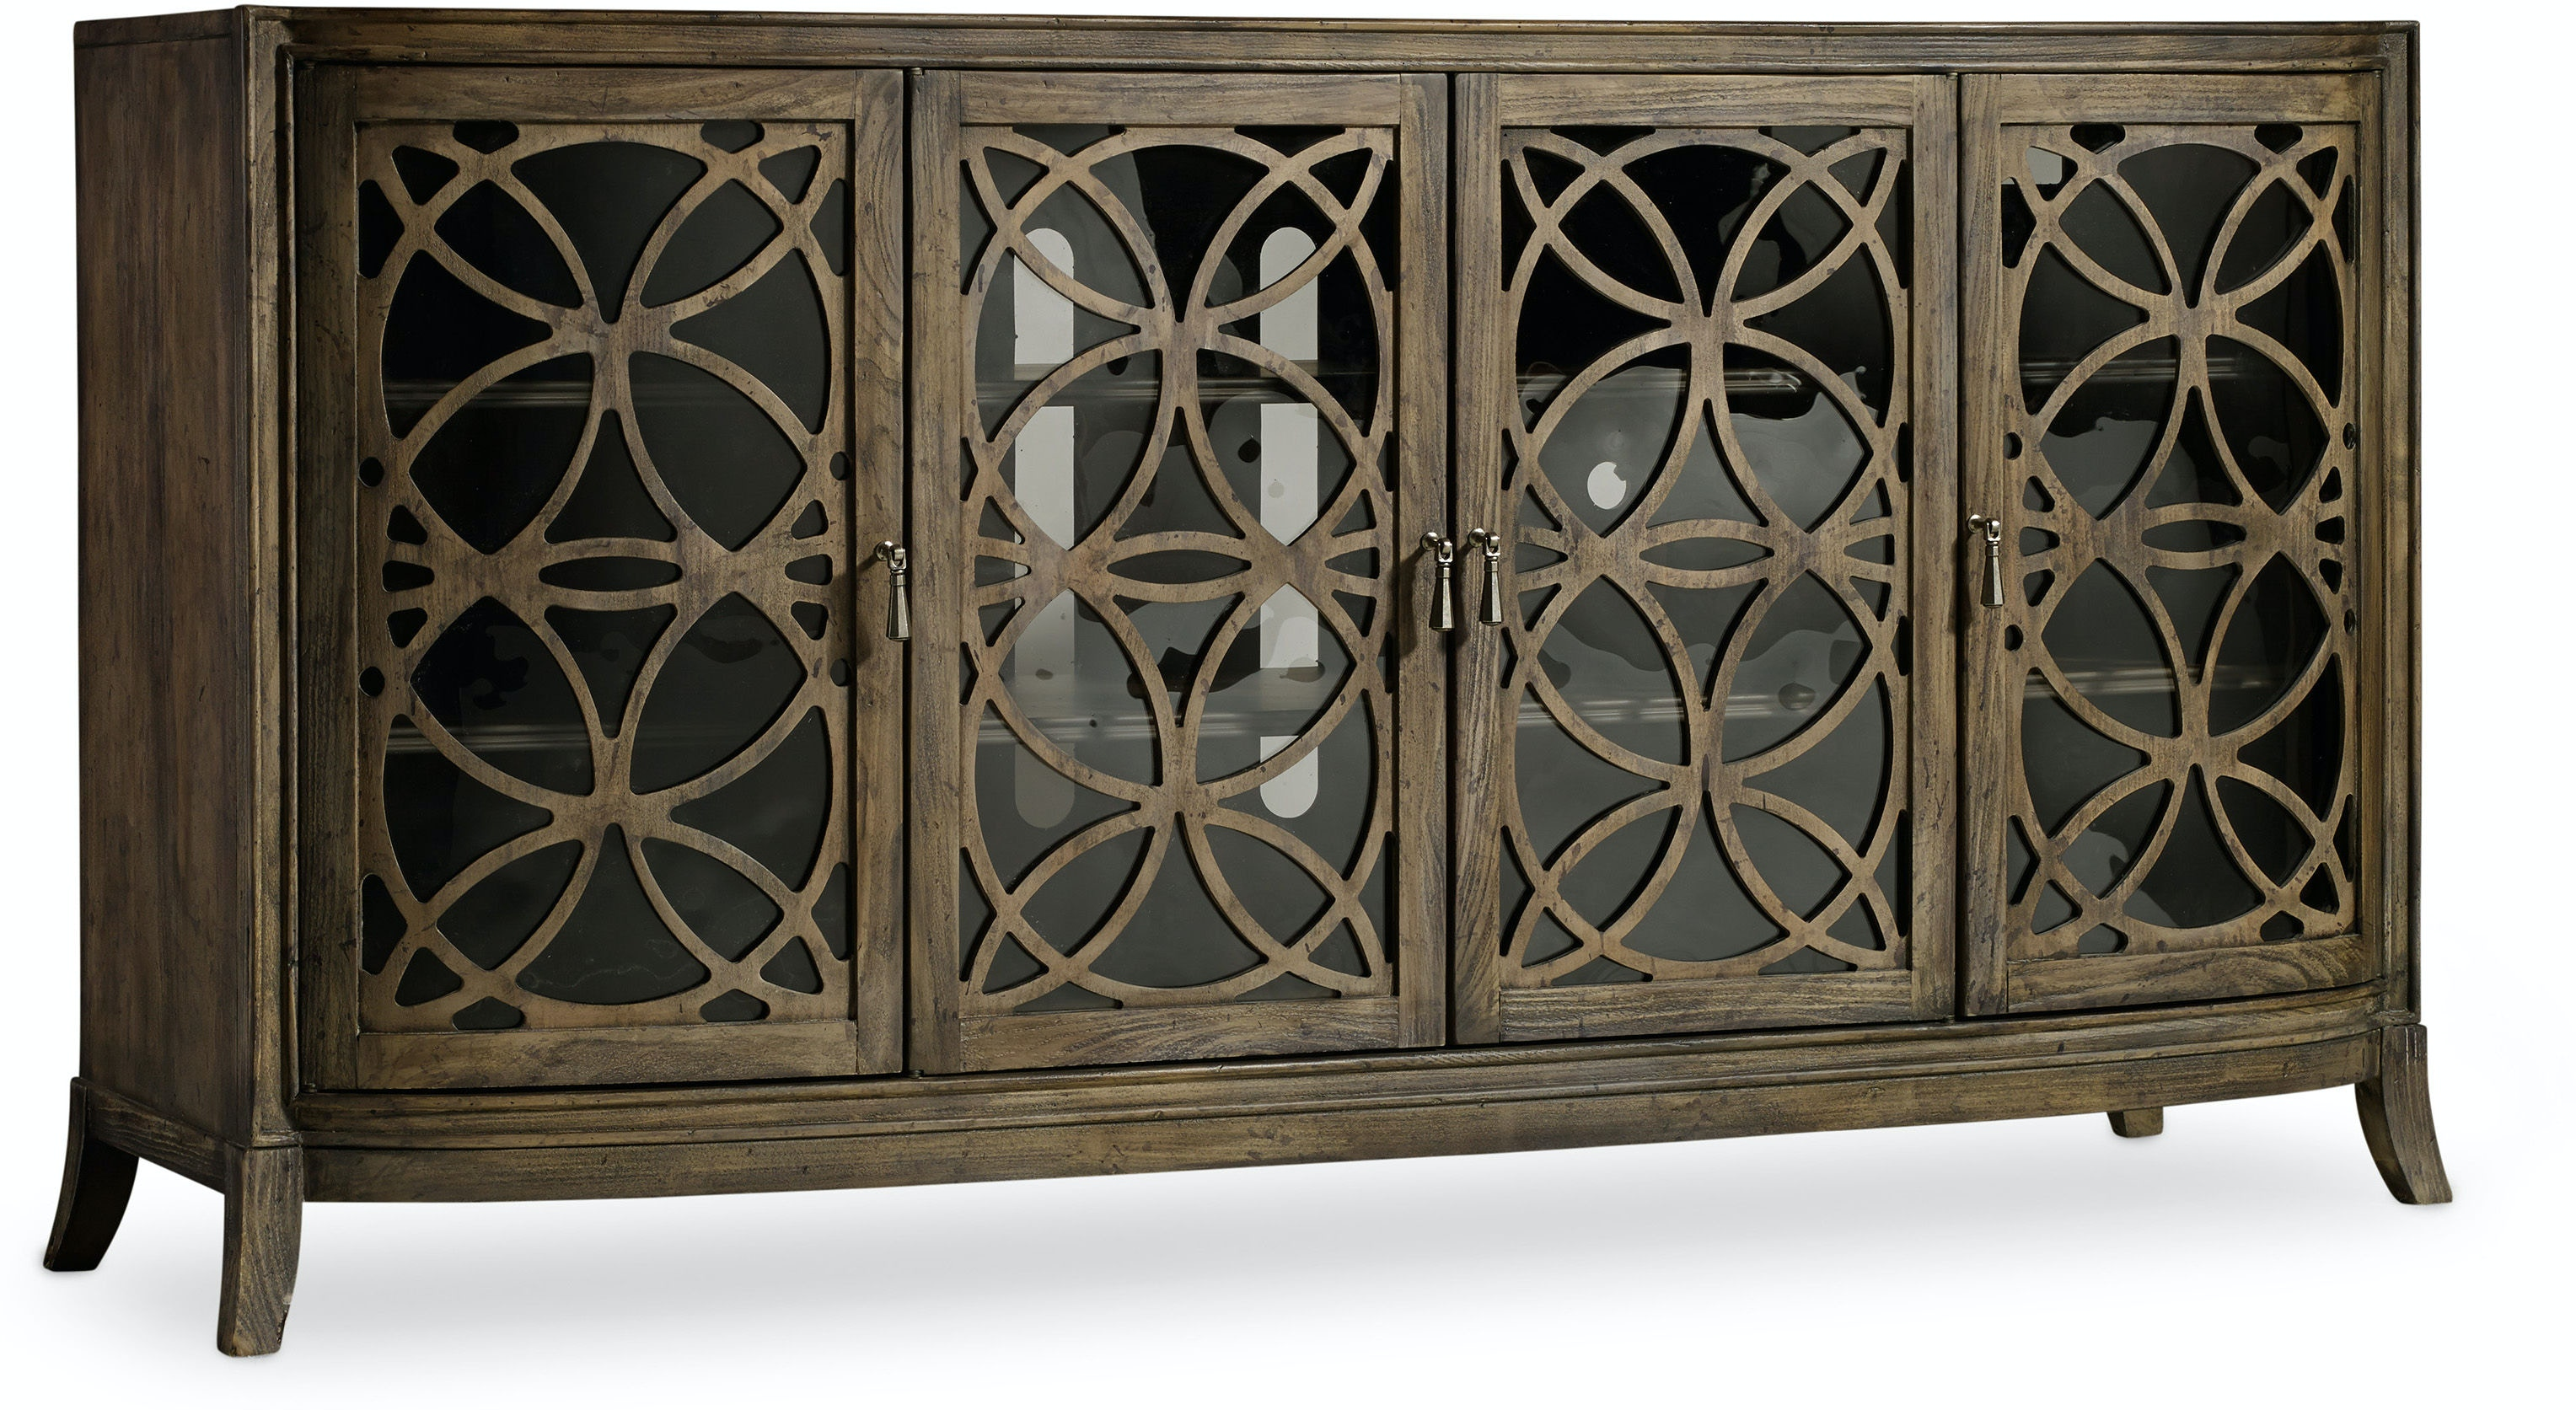 Hooker Furniture Home Entertainment Melange Sloan Console